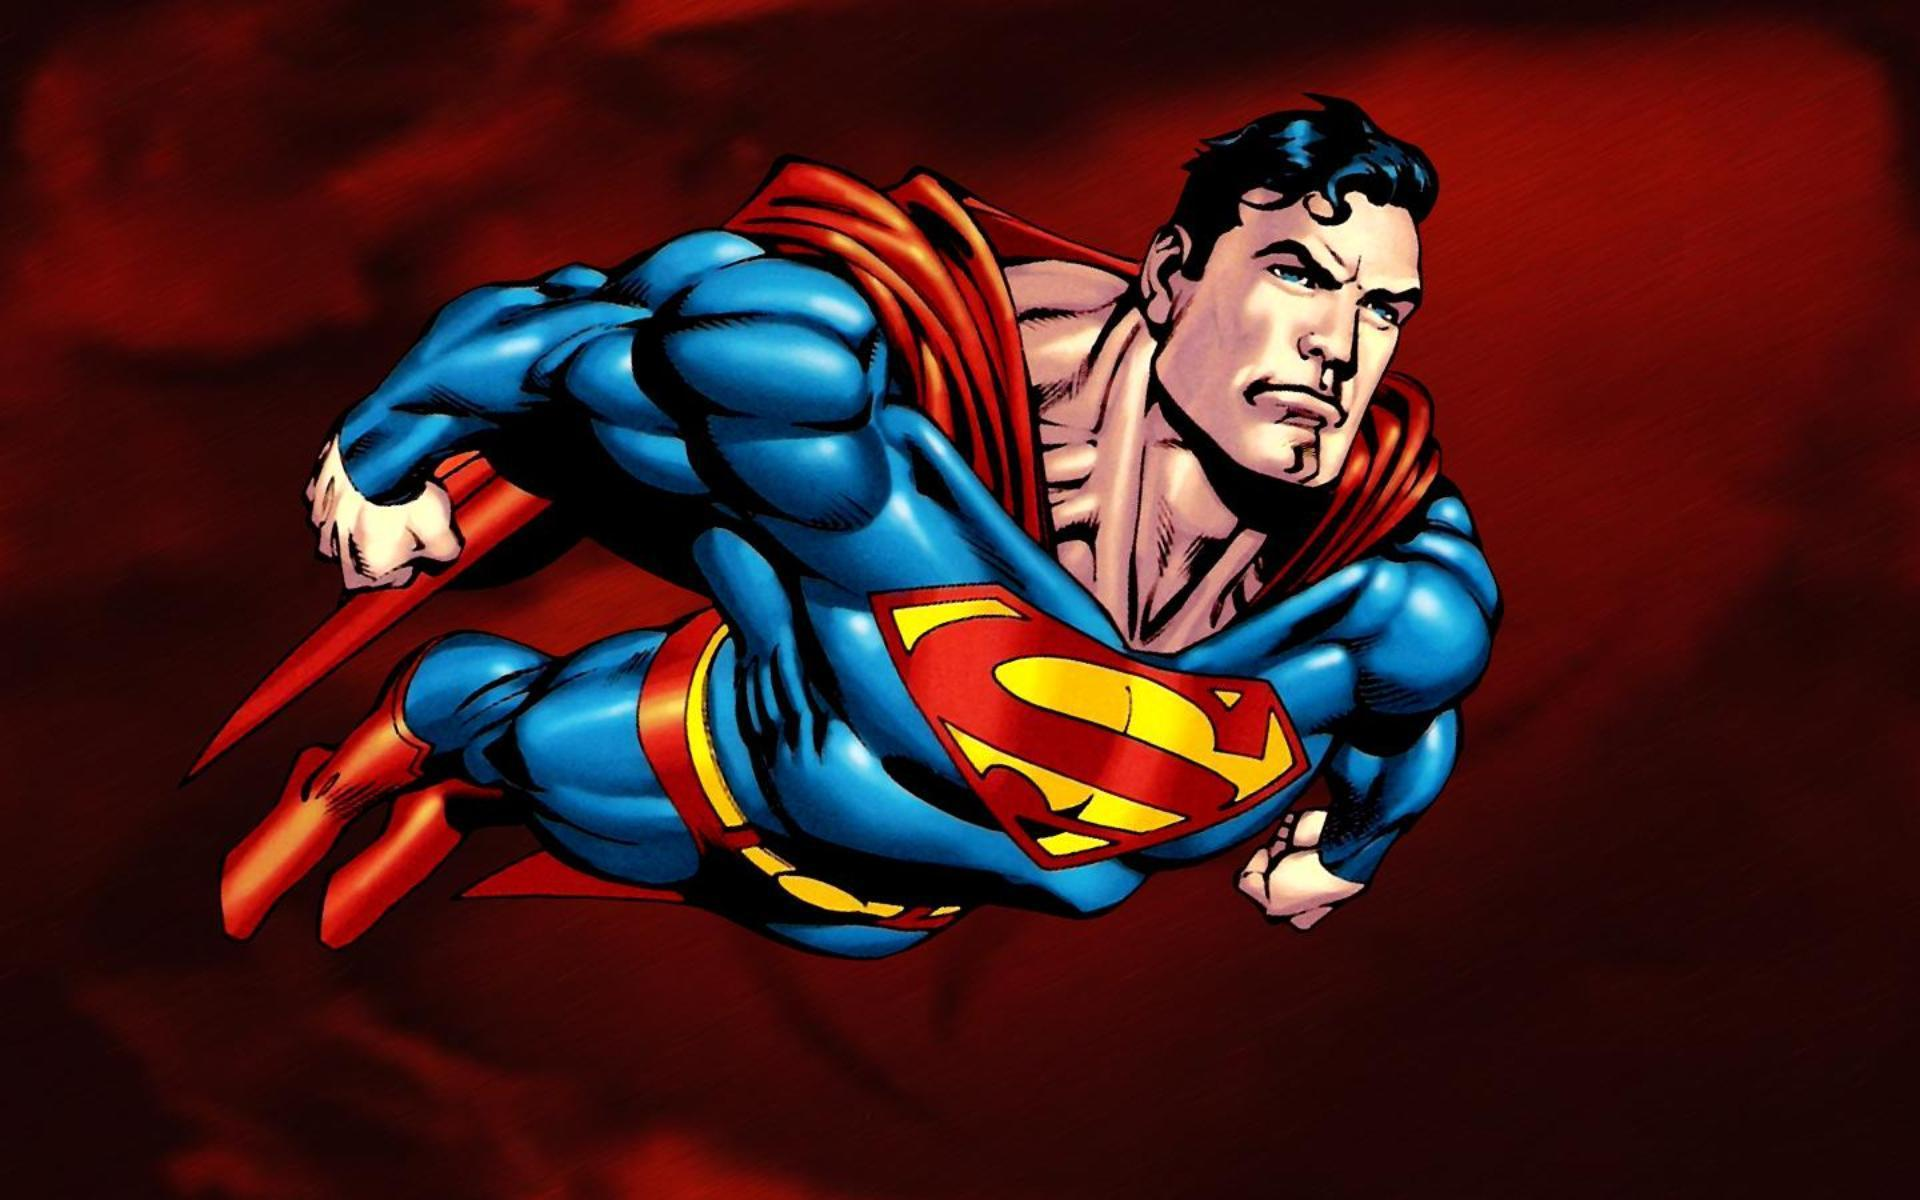 Superman Wallpapers - Full HD wallpaper search - page 13